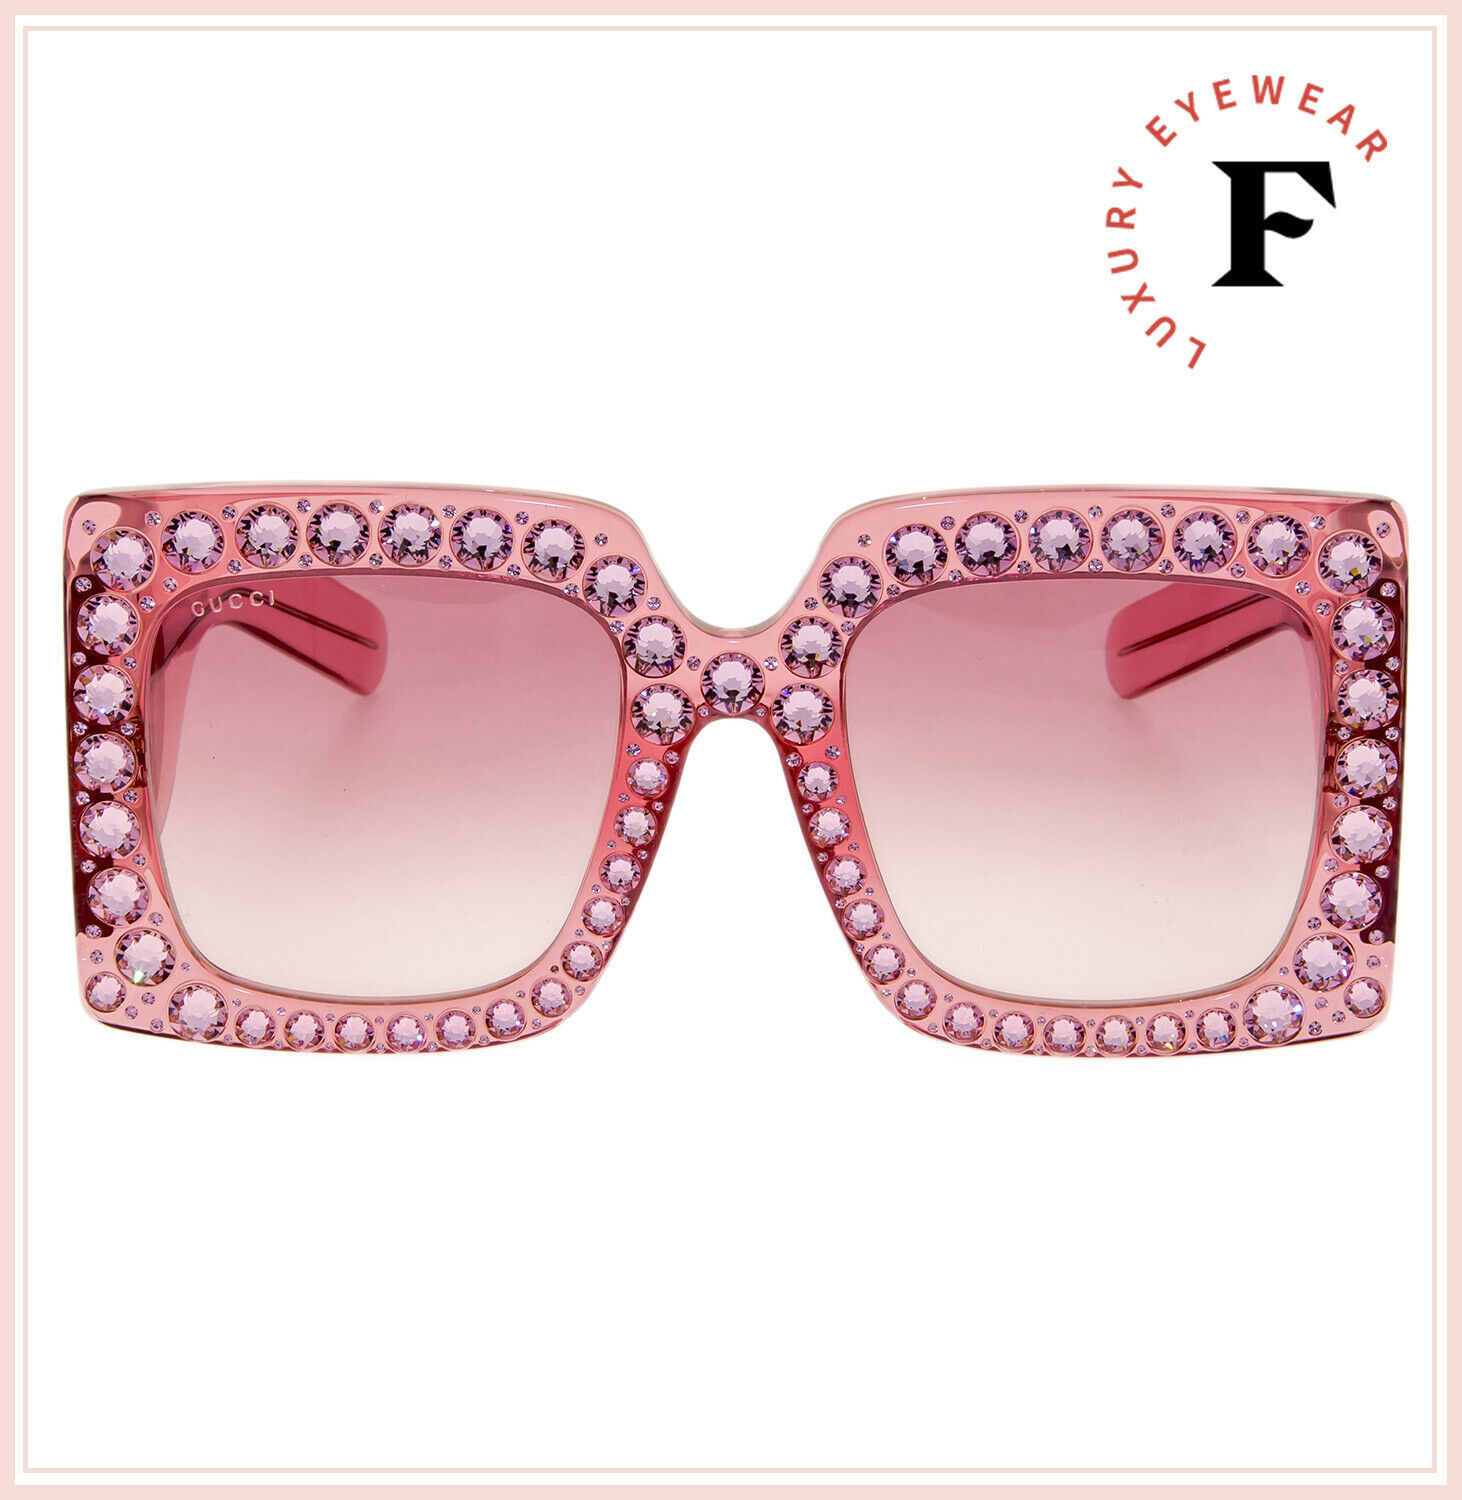 GUCCI HOLLYWOOD FOREVER 0145 Pink Crystal Stud Oversized Sunglasses GG0145